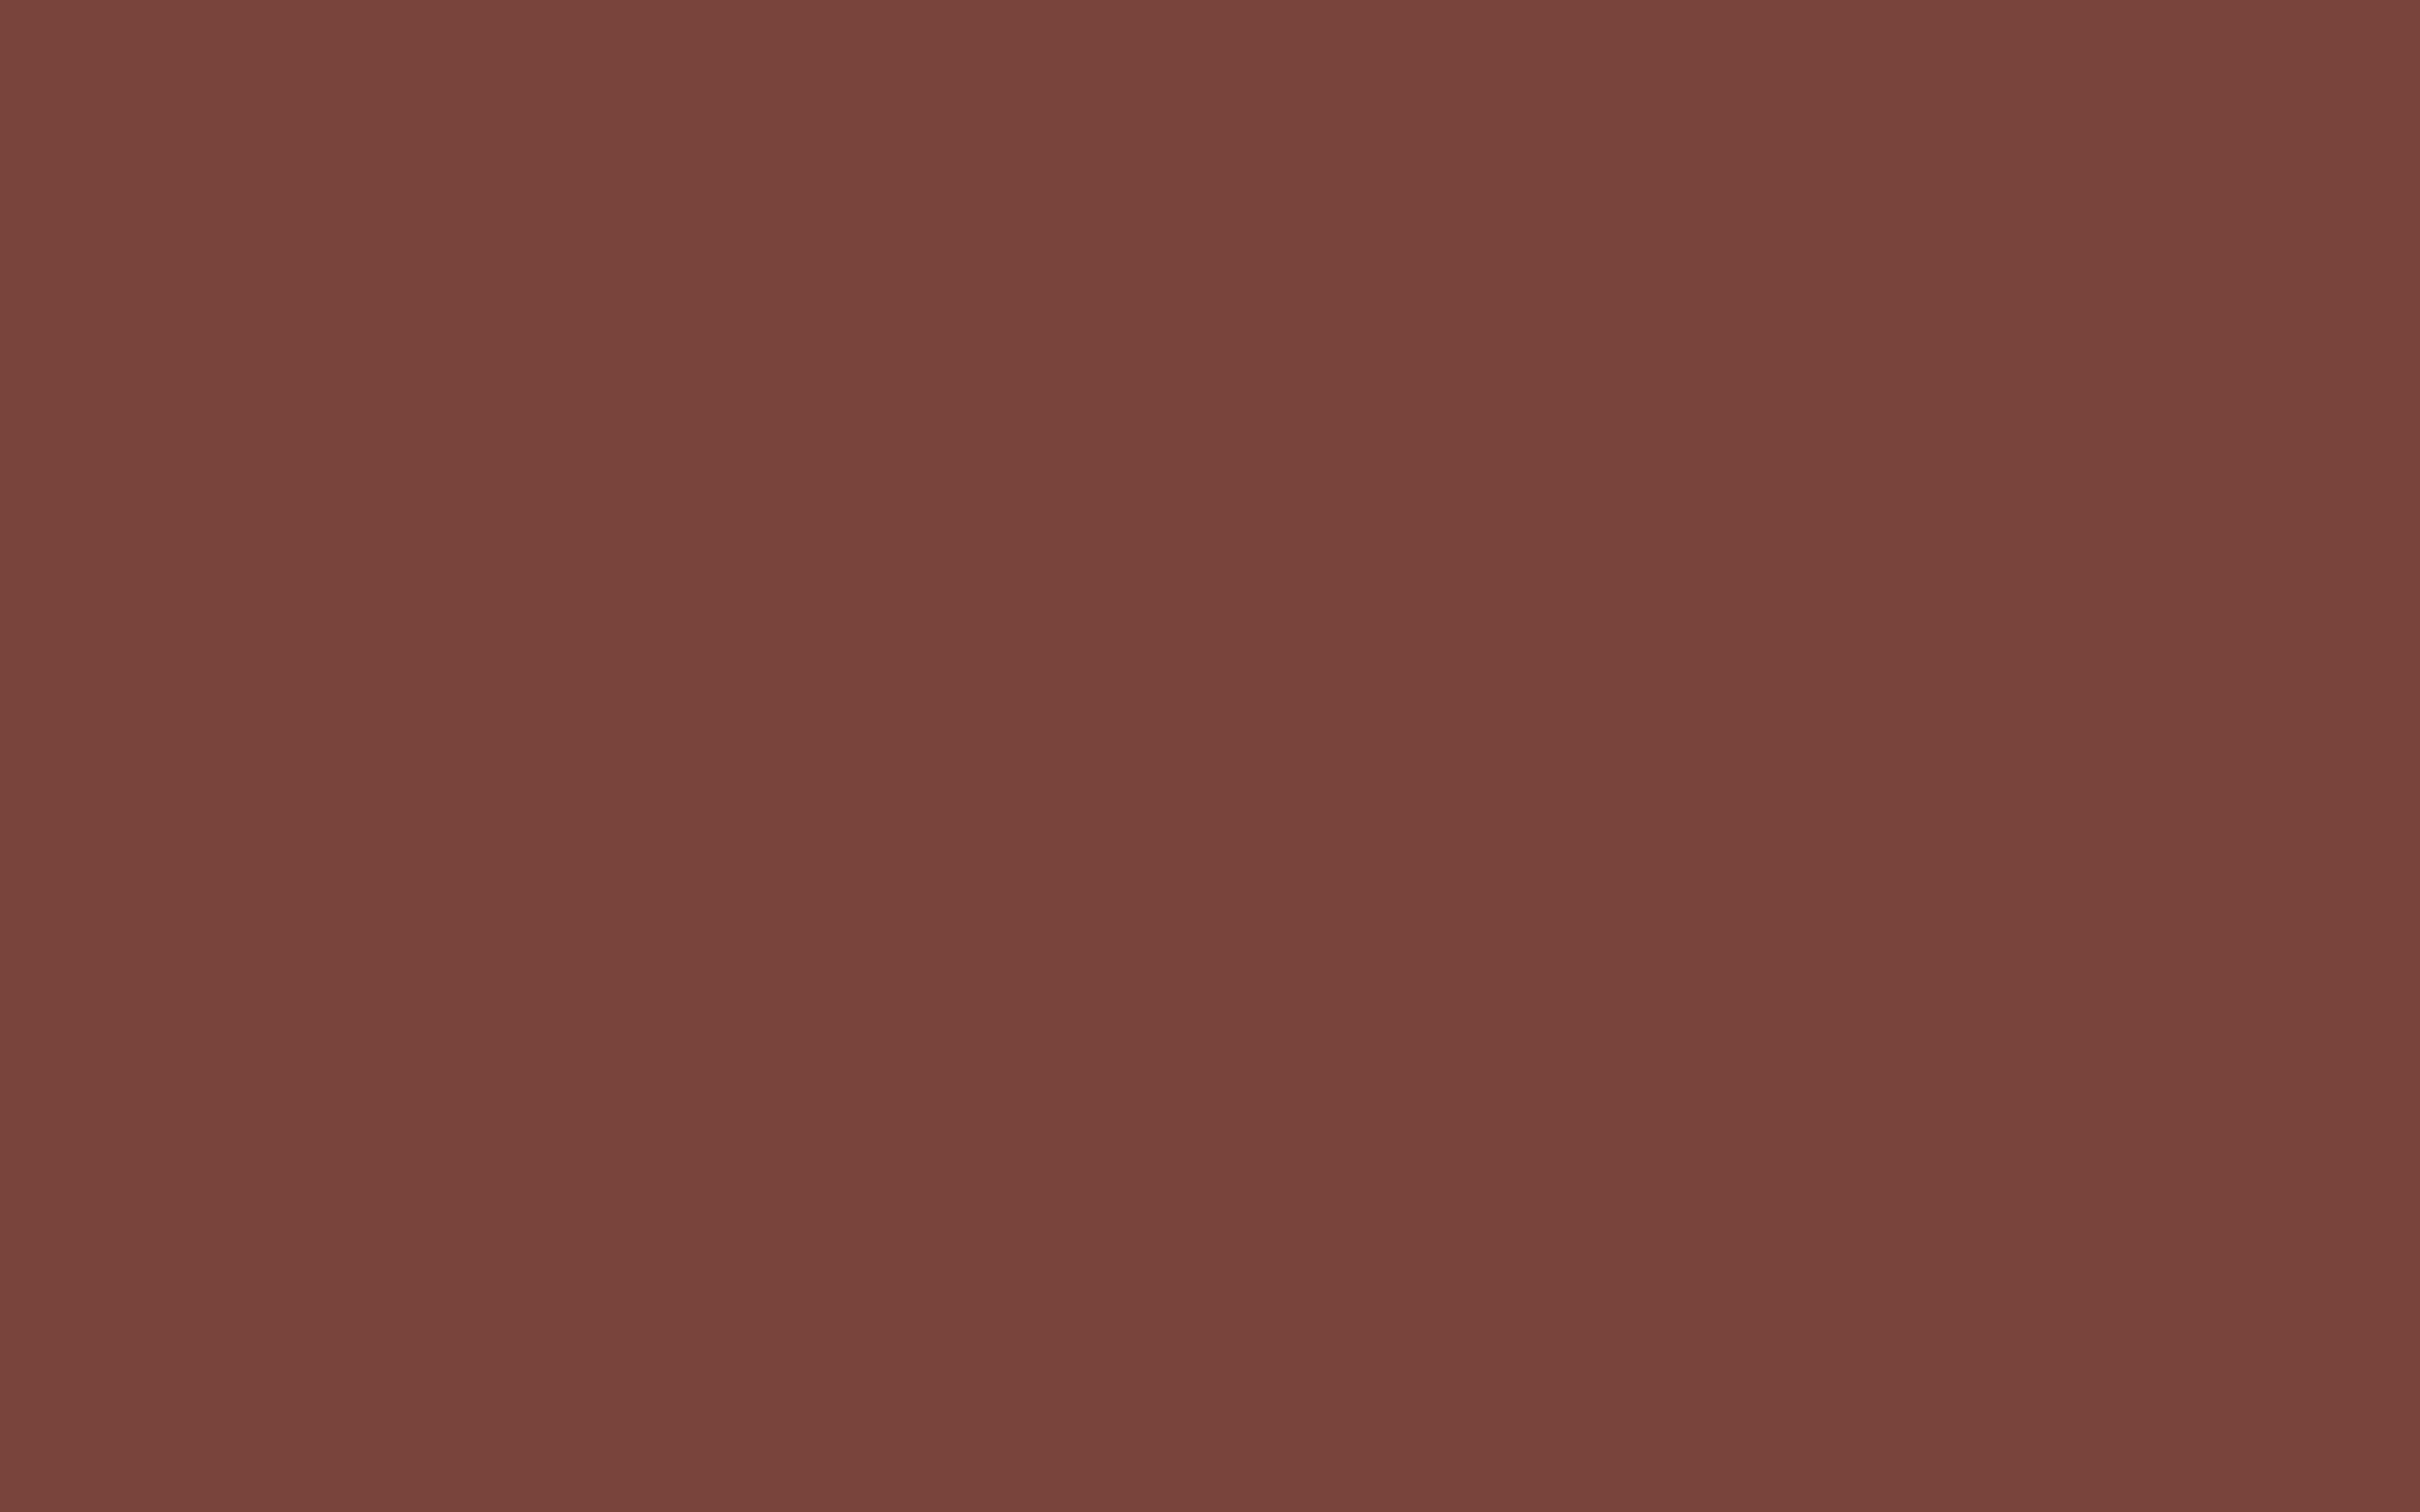 2560x1600 Medium Tuscan Red Solid Color Background